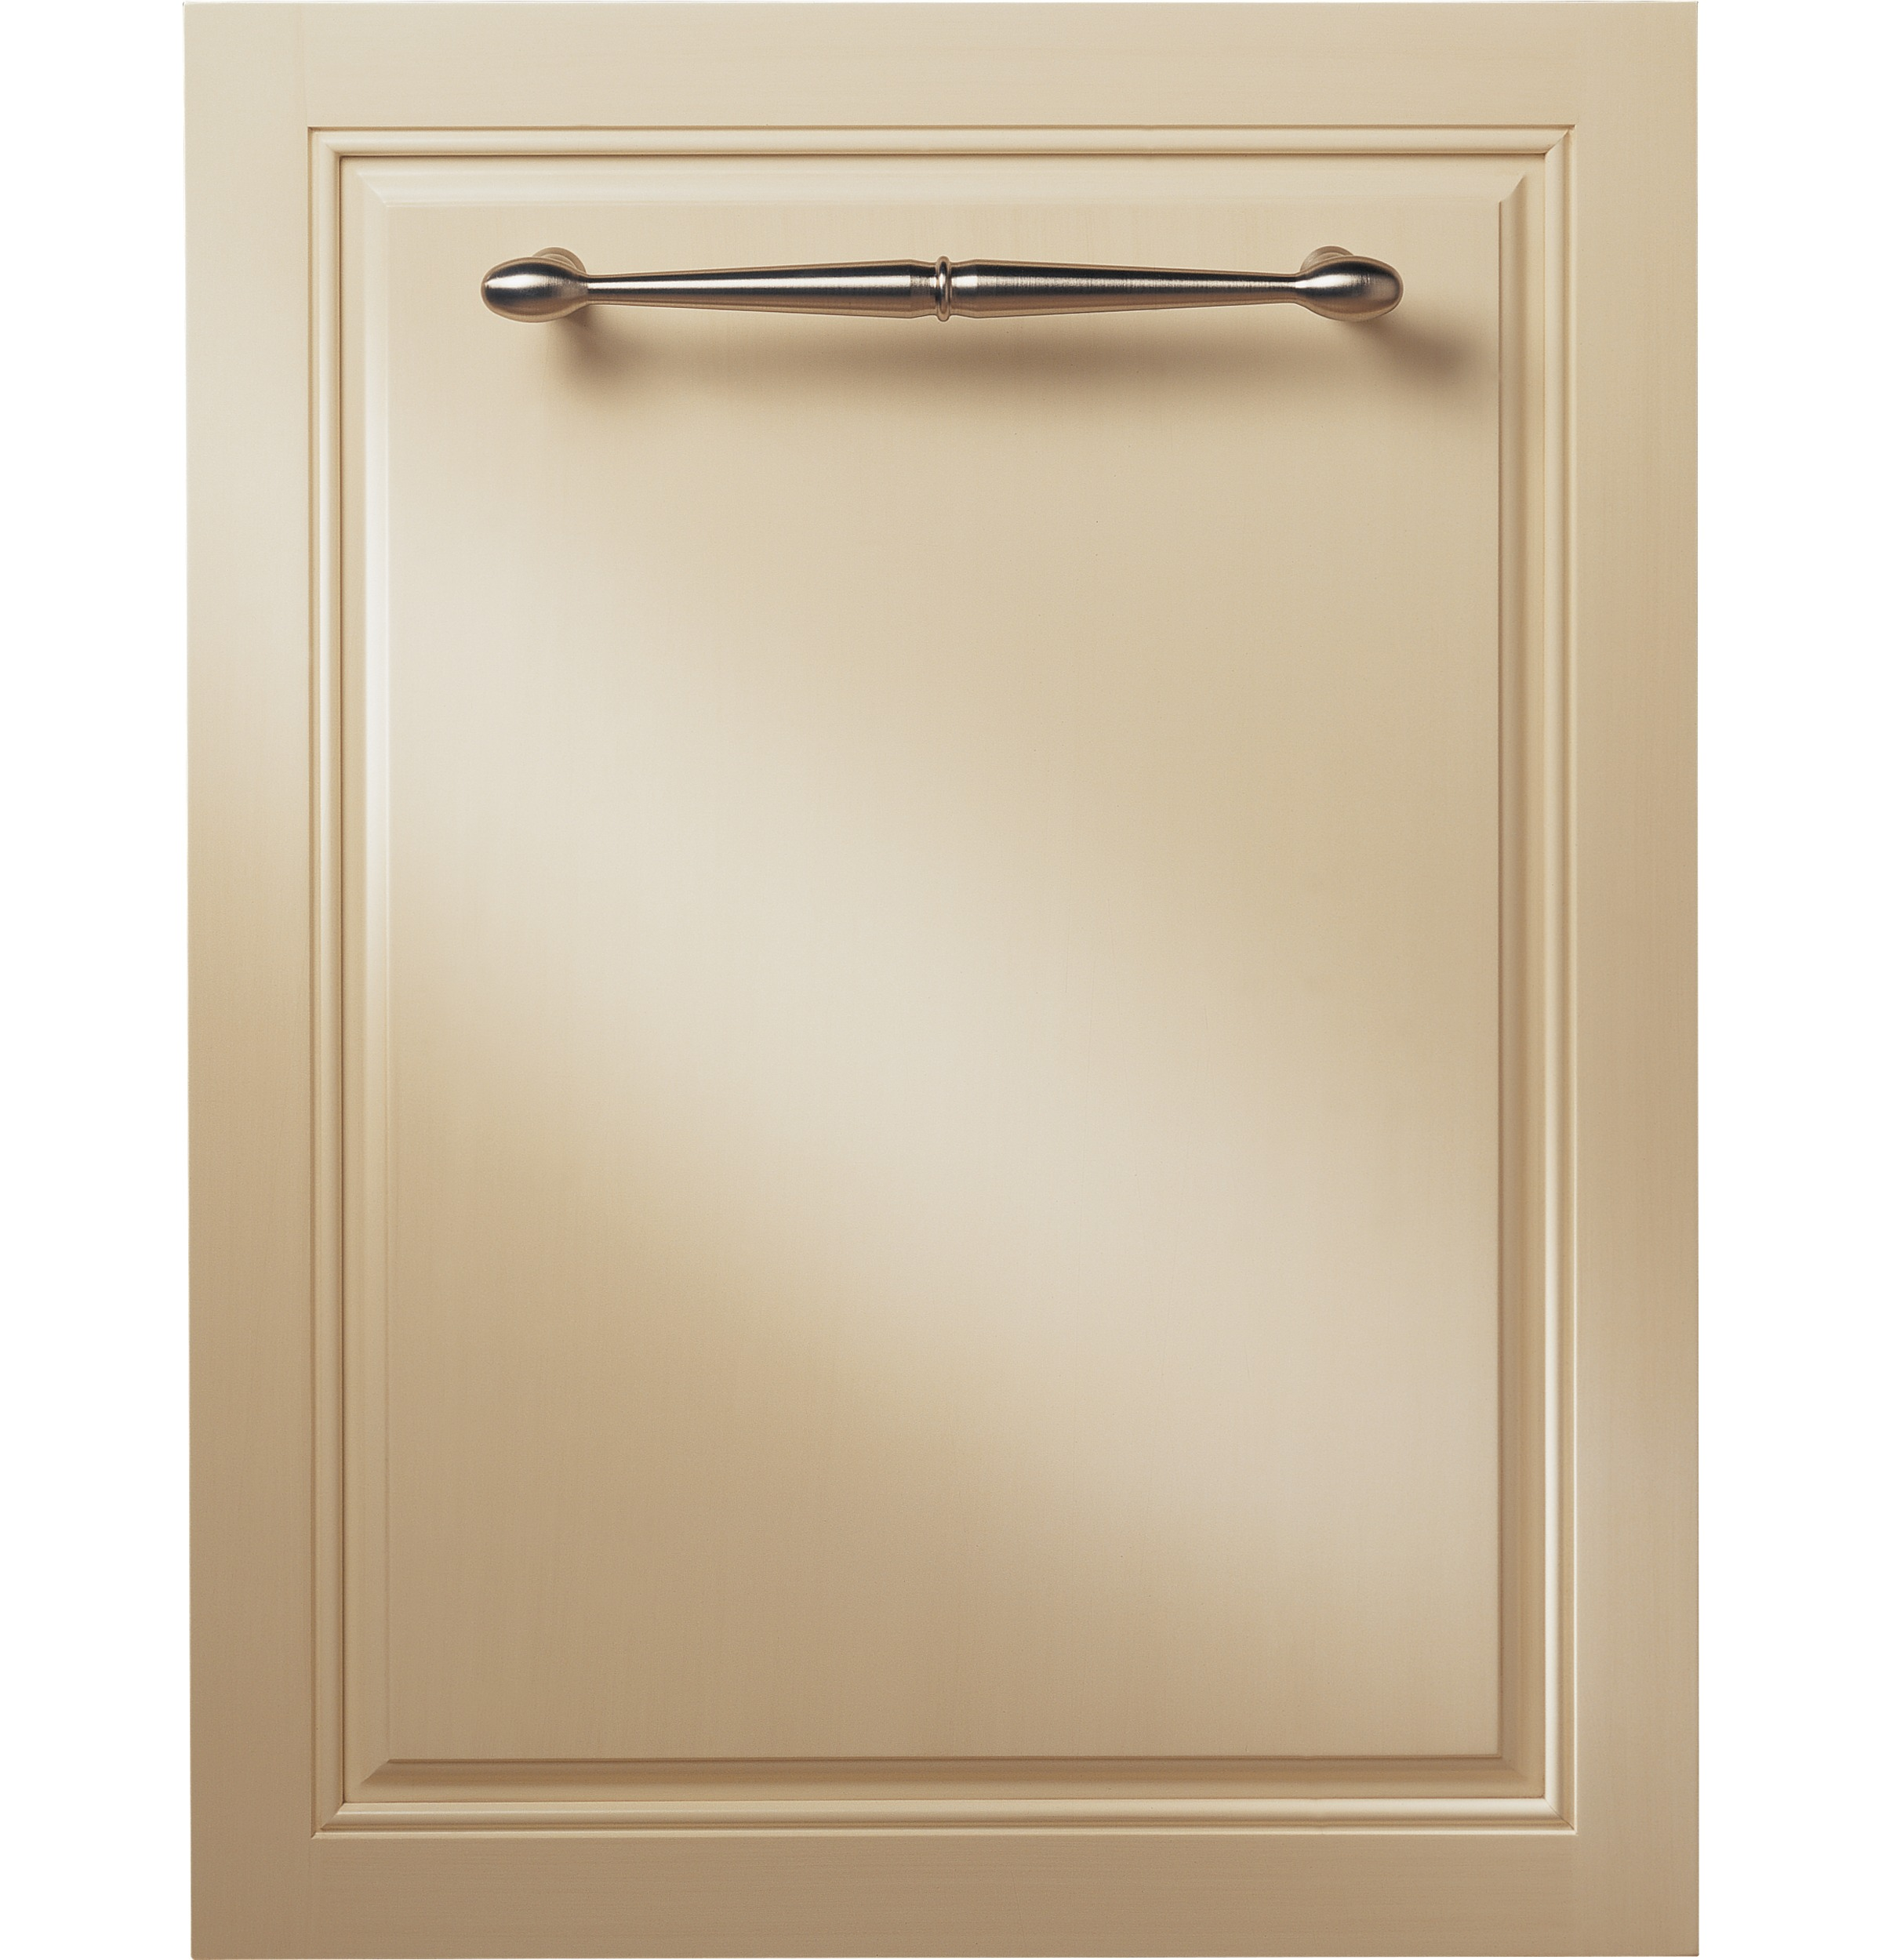 Monogram Dishwasher ZDT985SINII in Pannel-Ready color showcased by Corbeil Electro Store